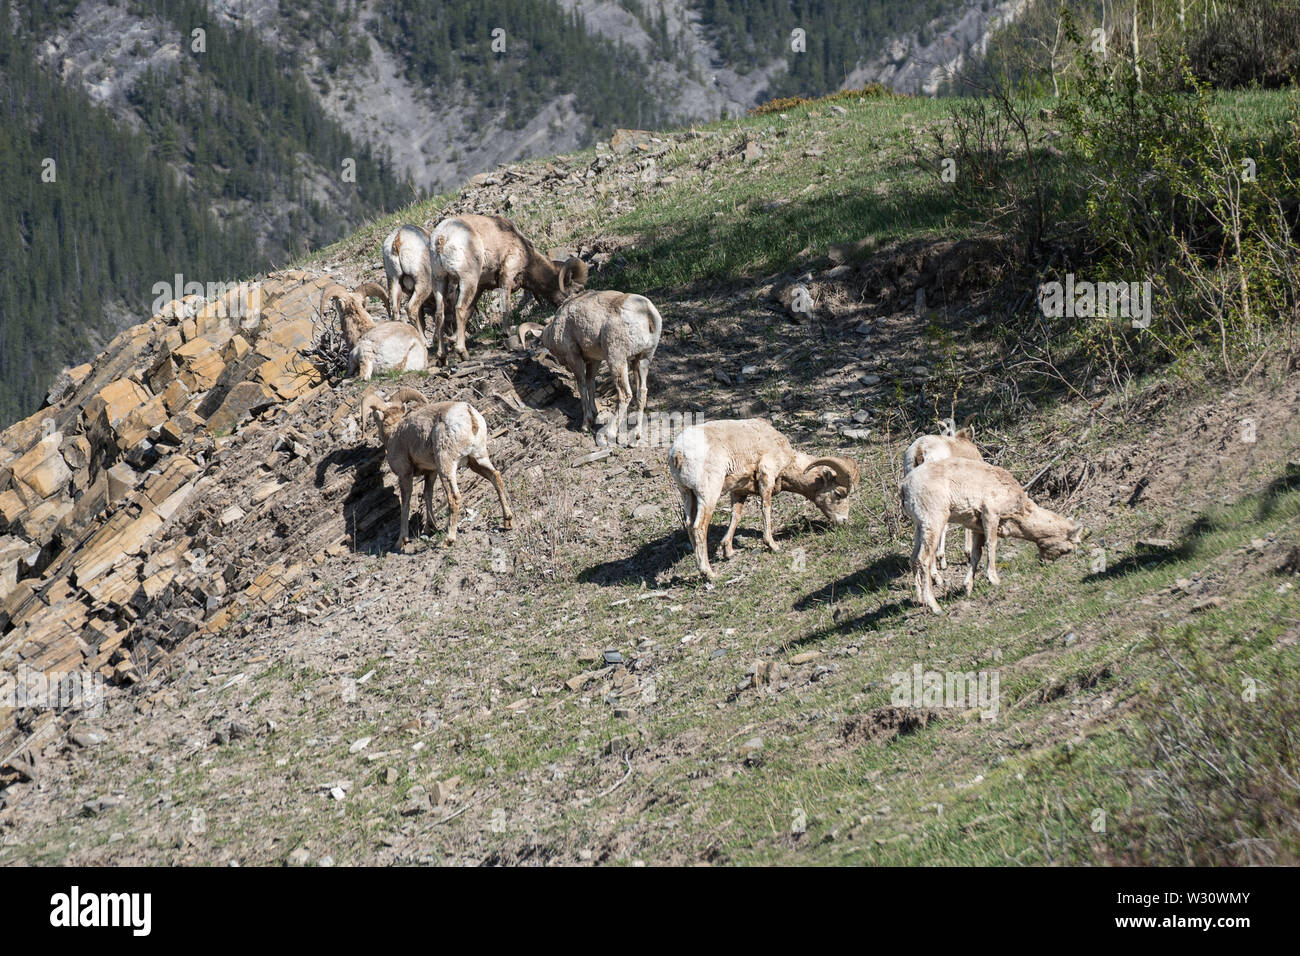 Bighorn Sheep in Banff National Park - Stock Image